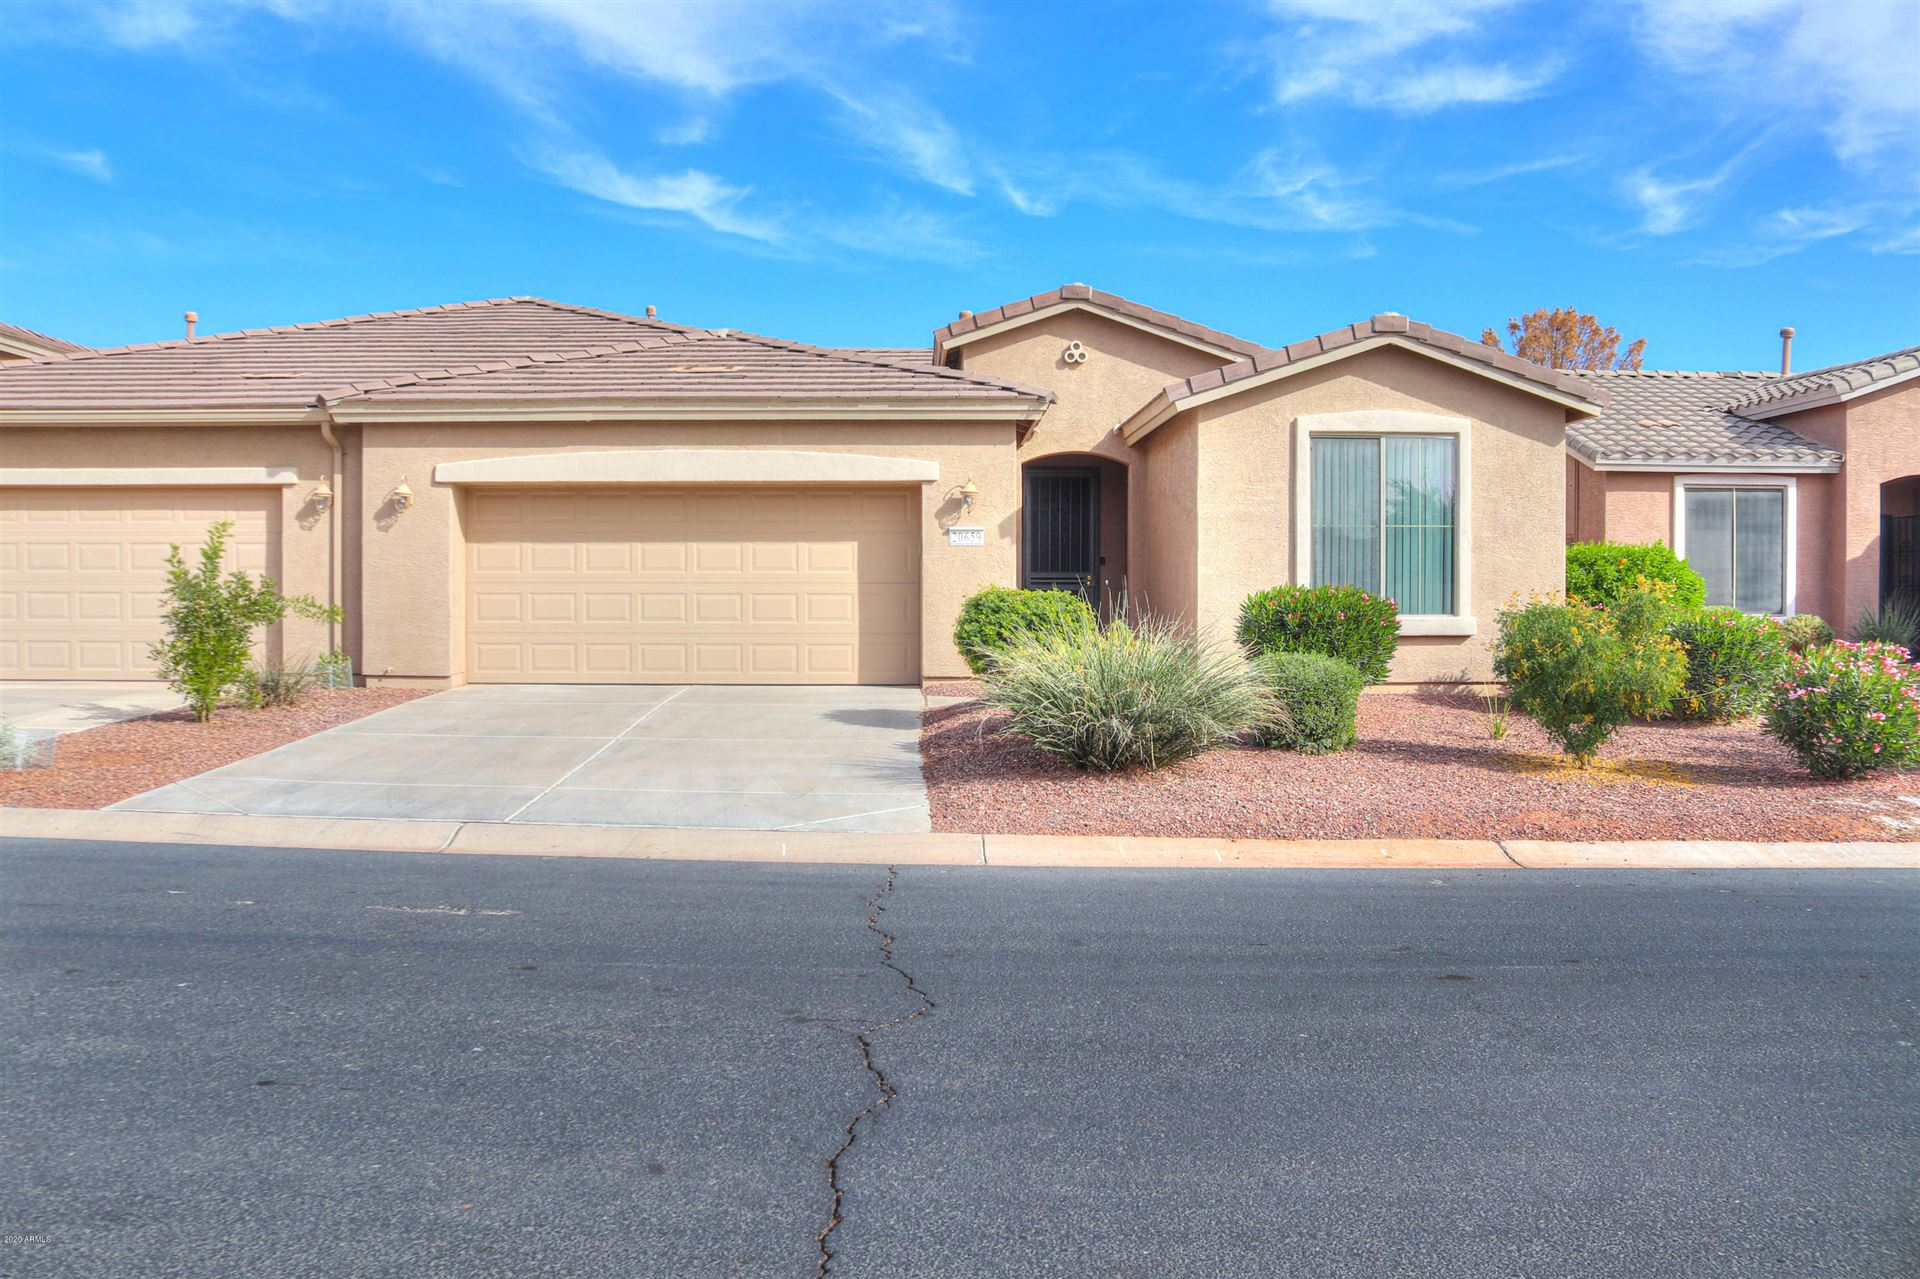 20659 N LEMON DROP Drive, Maricopa, AZ 85138 - #: 6168805